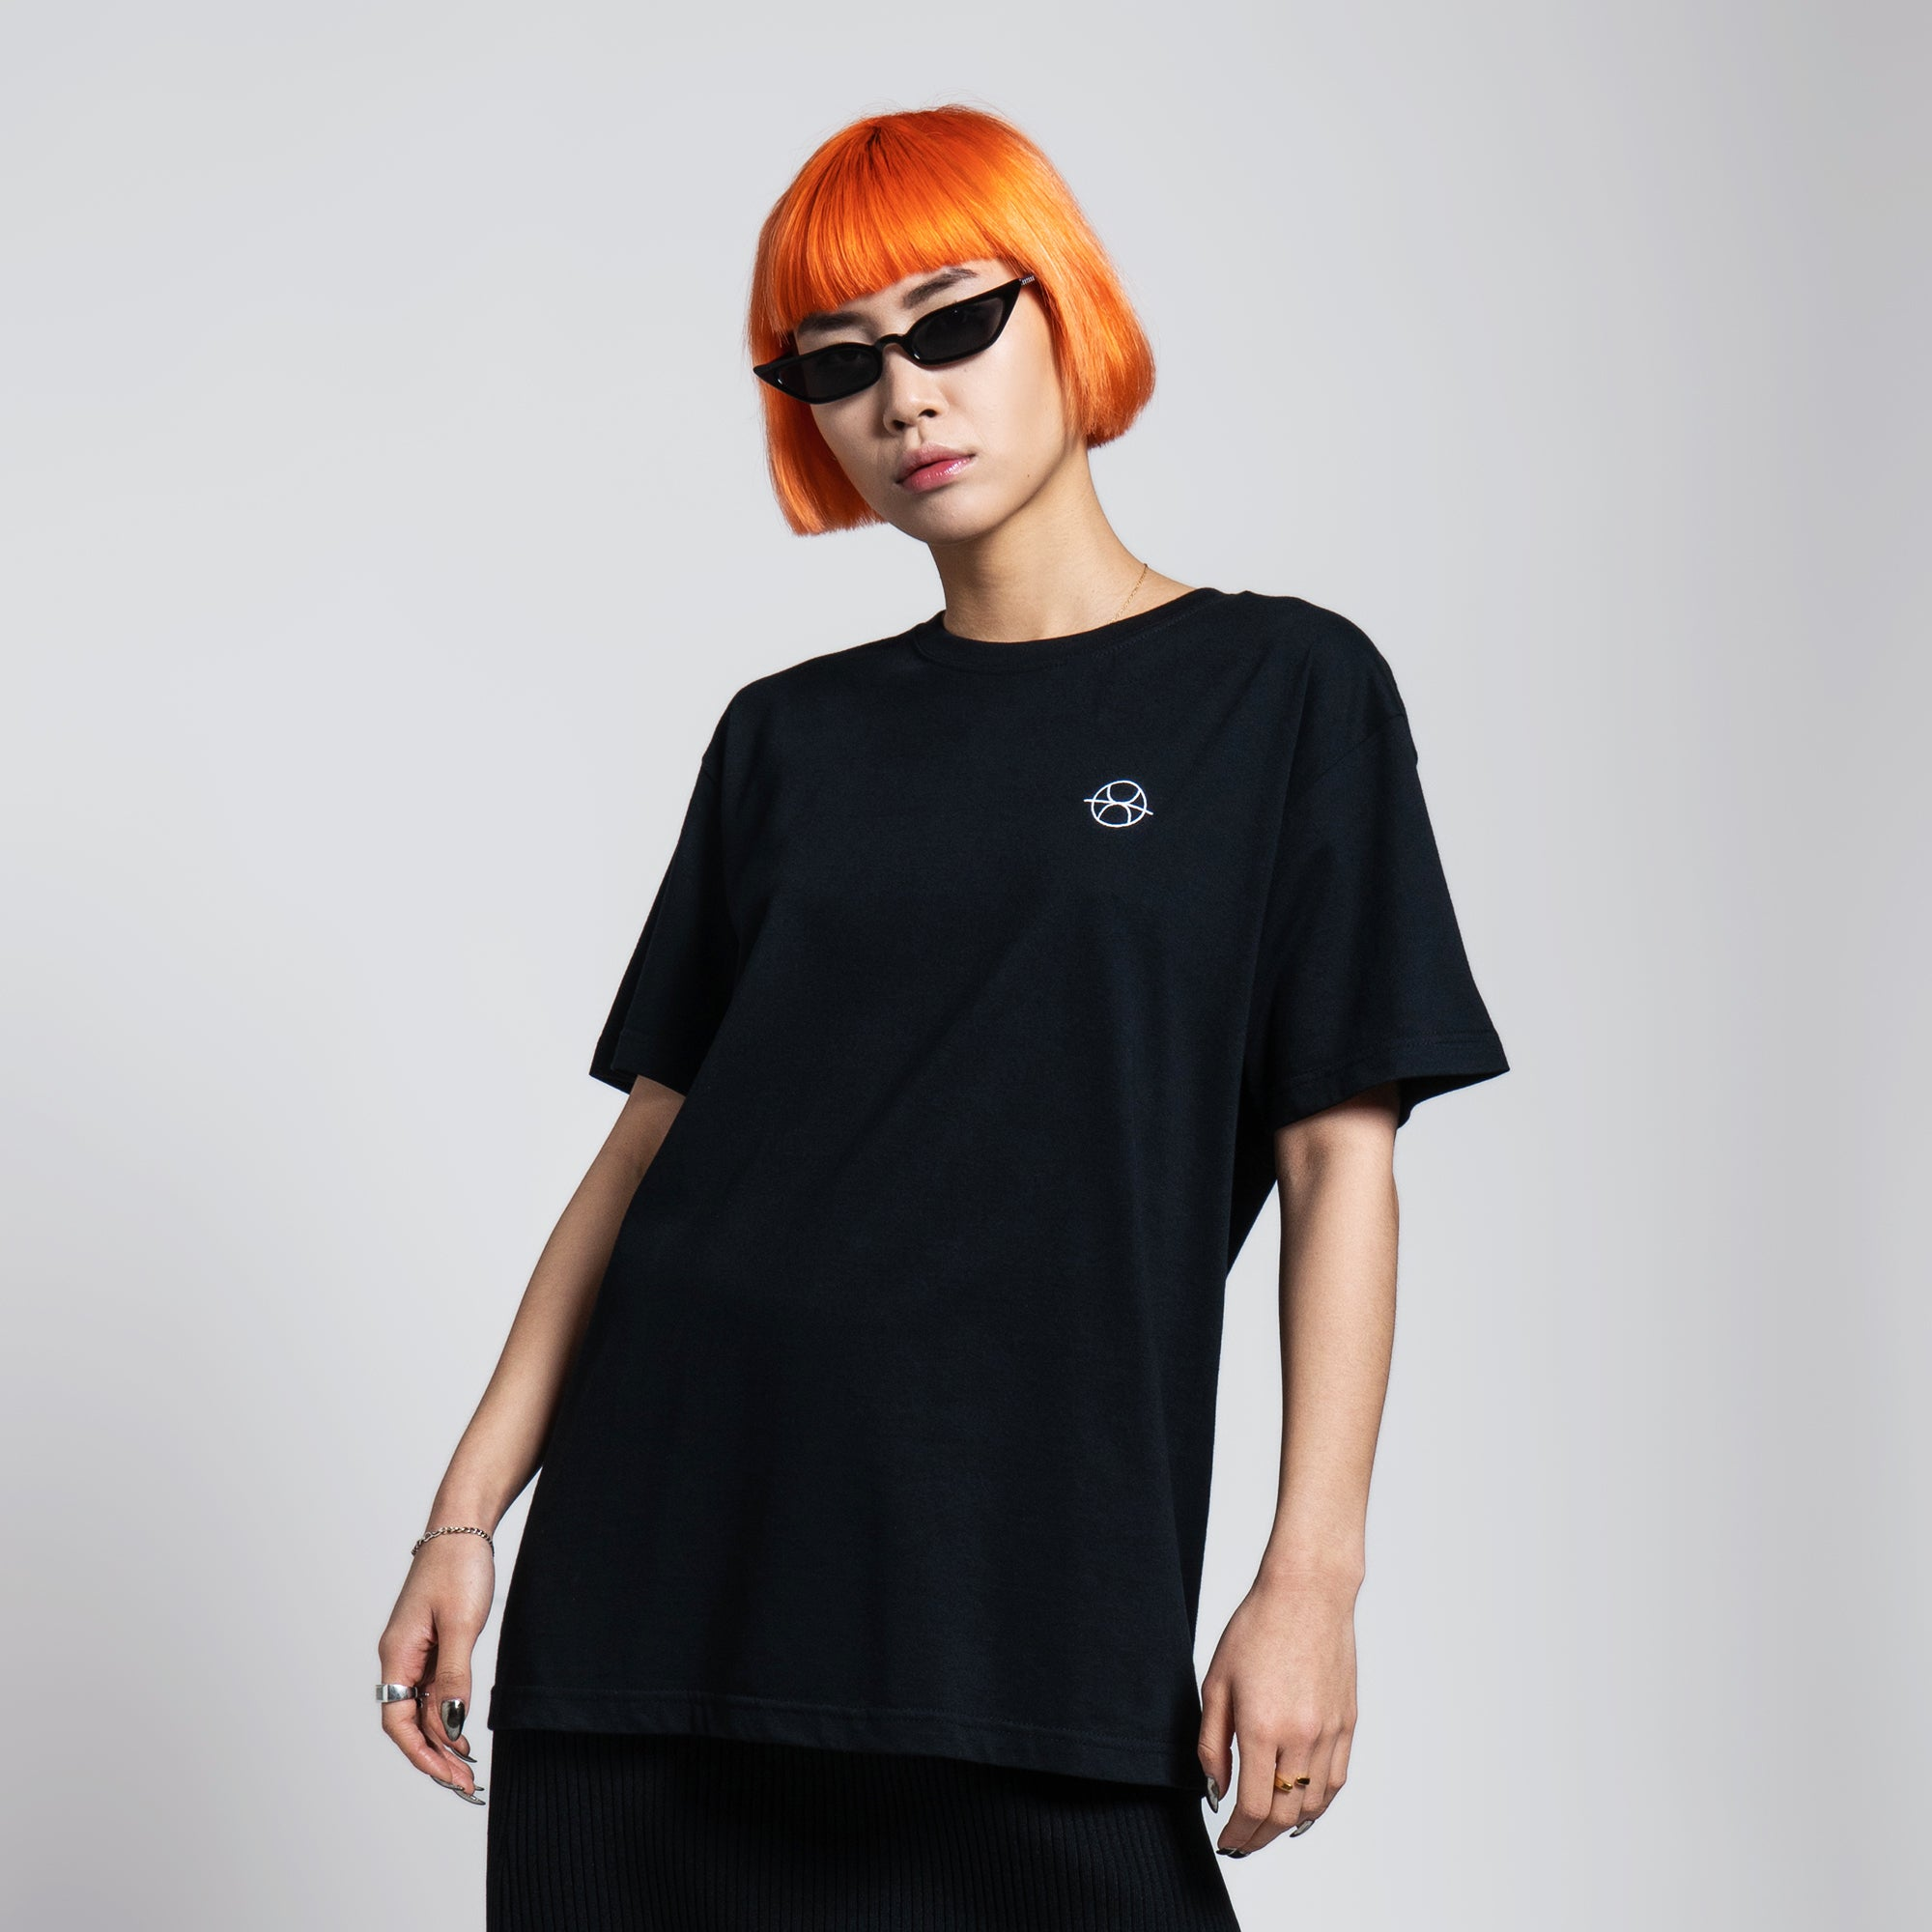 RADIKON COLLAB T-SHIRT - BLACK